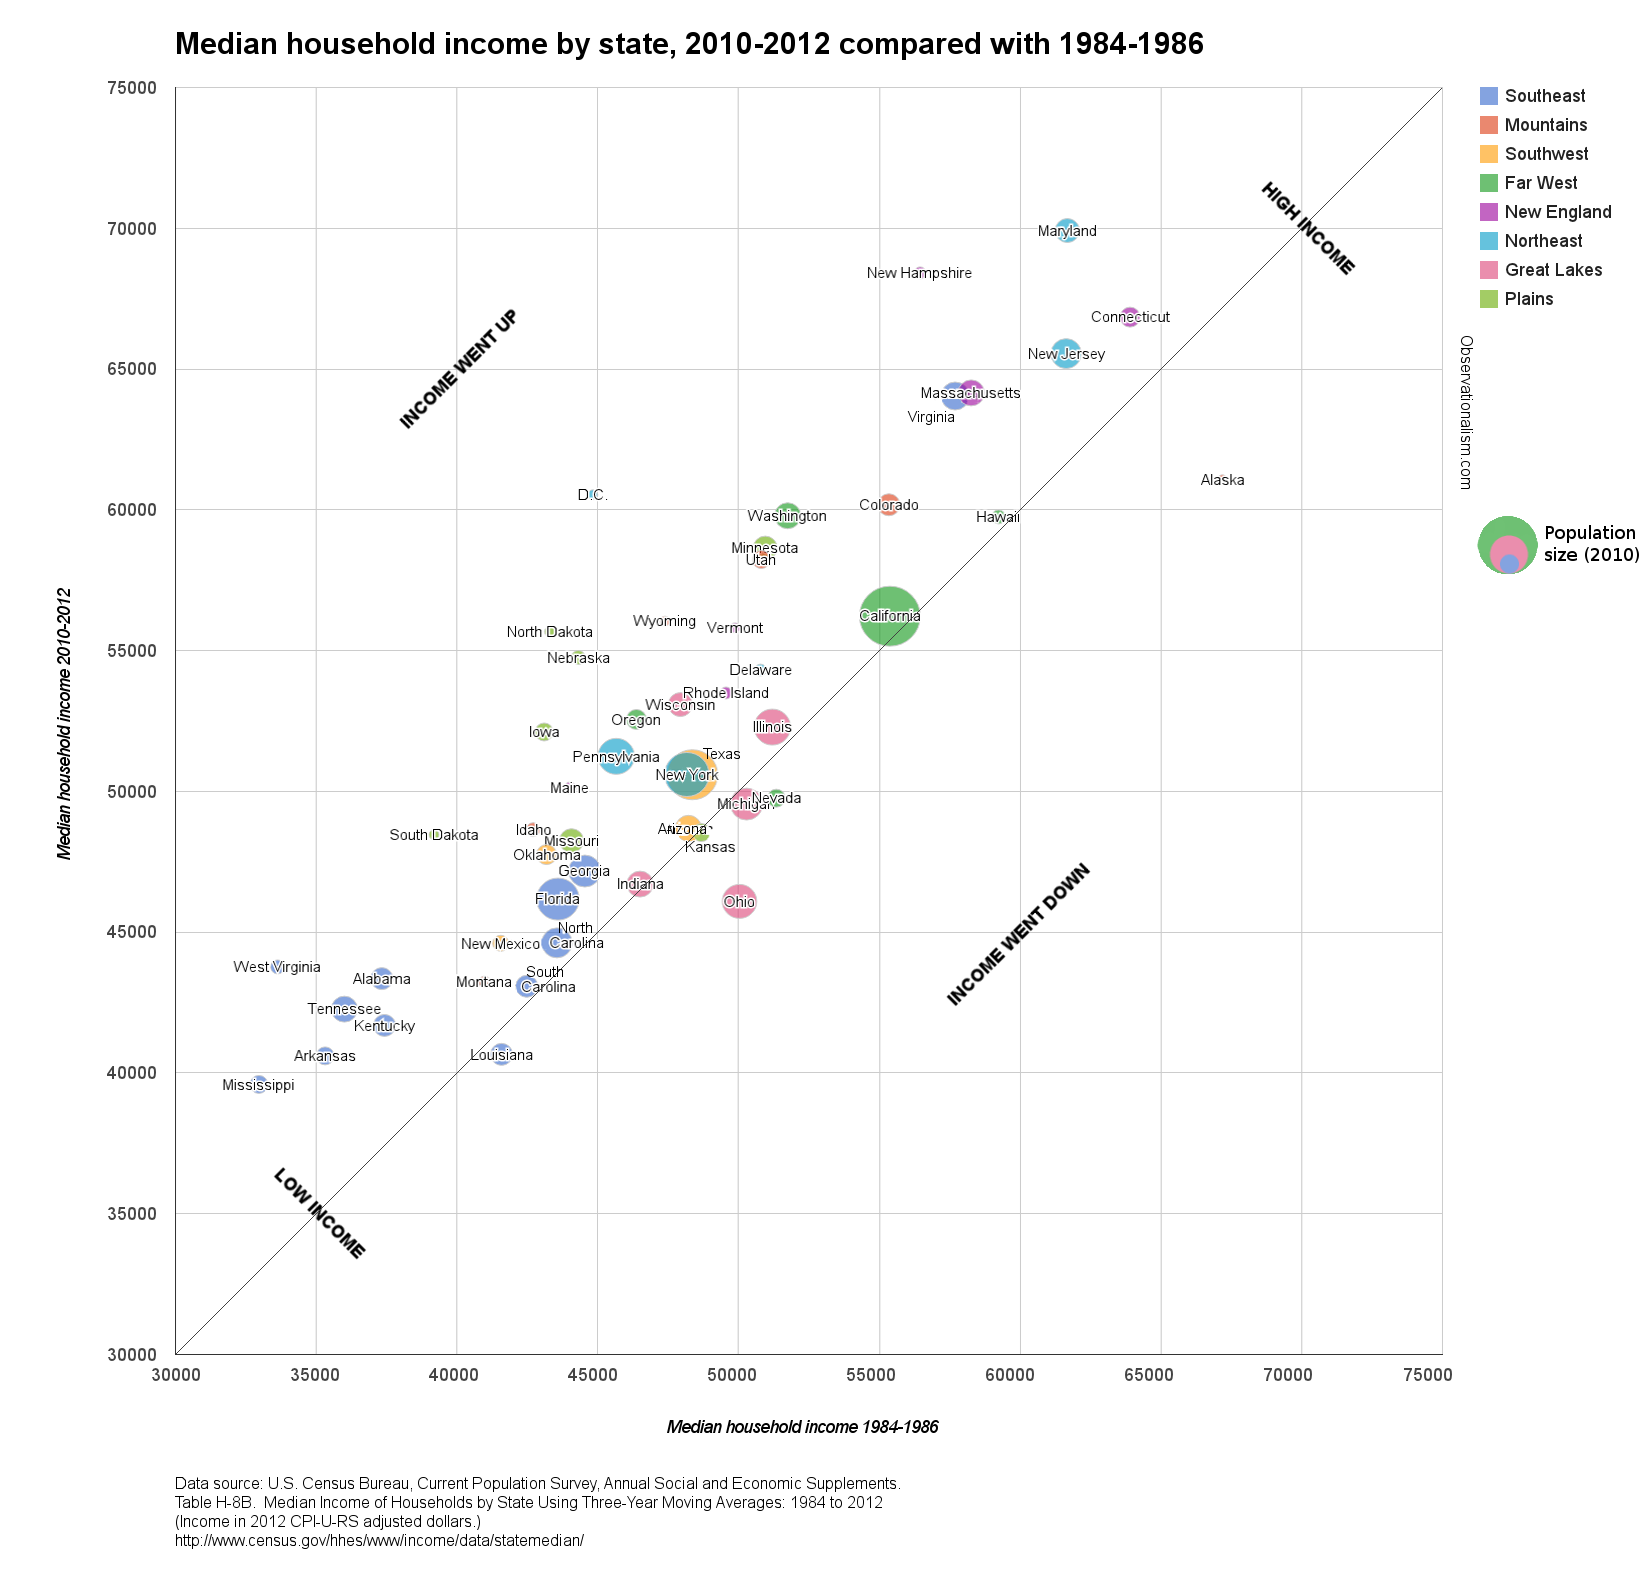 Workbook median household income chart median household income by state in 1984 1986 and 2010 2012 nvjuhfo Gallery